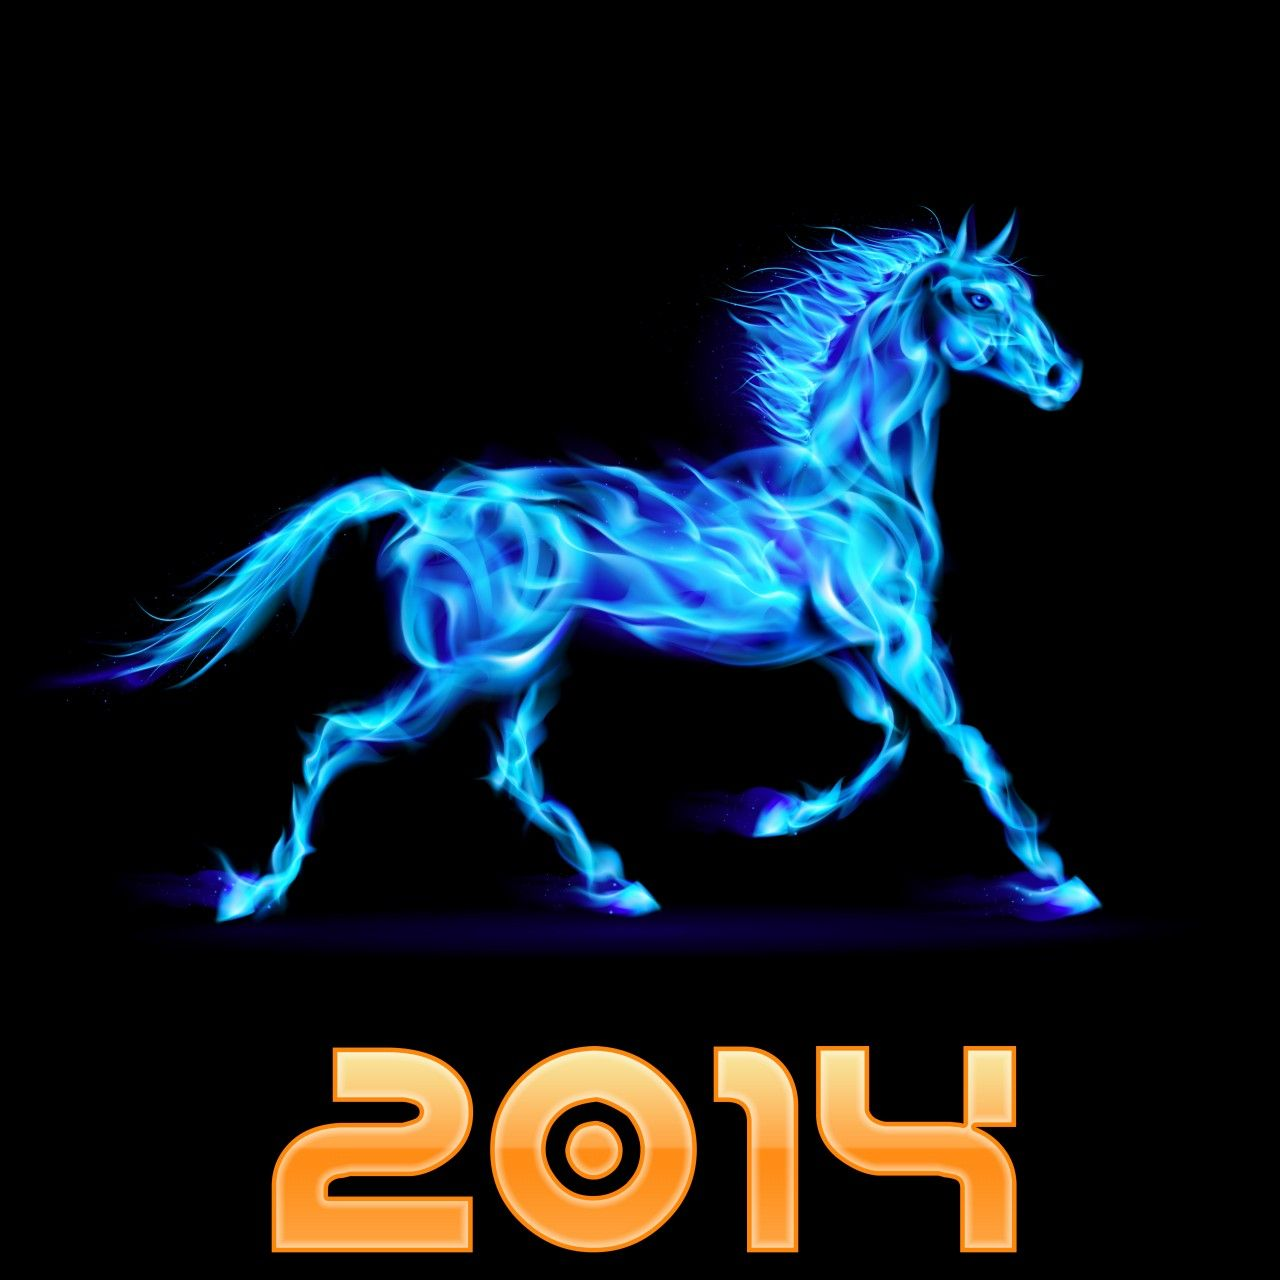 I Wish You Merry Christmas And Happy New Year 2014 Happy New Year 2014 Year Of The Horse Happy New Year Fire horse chinese new year free hd